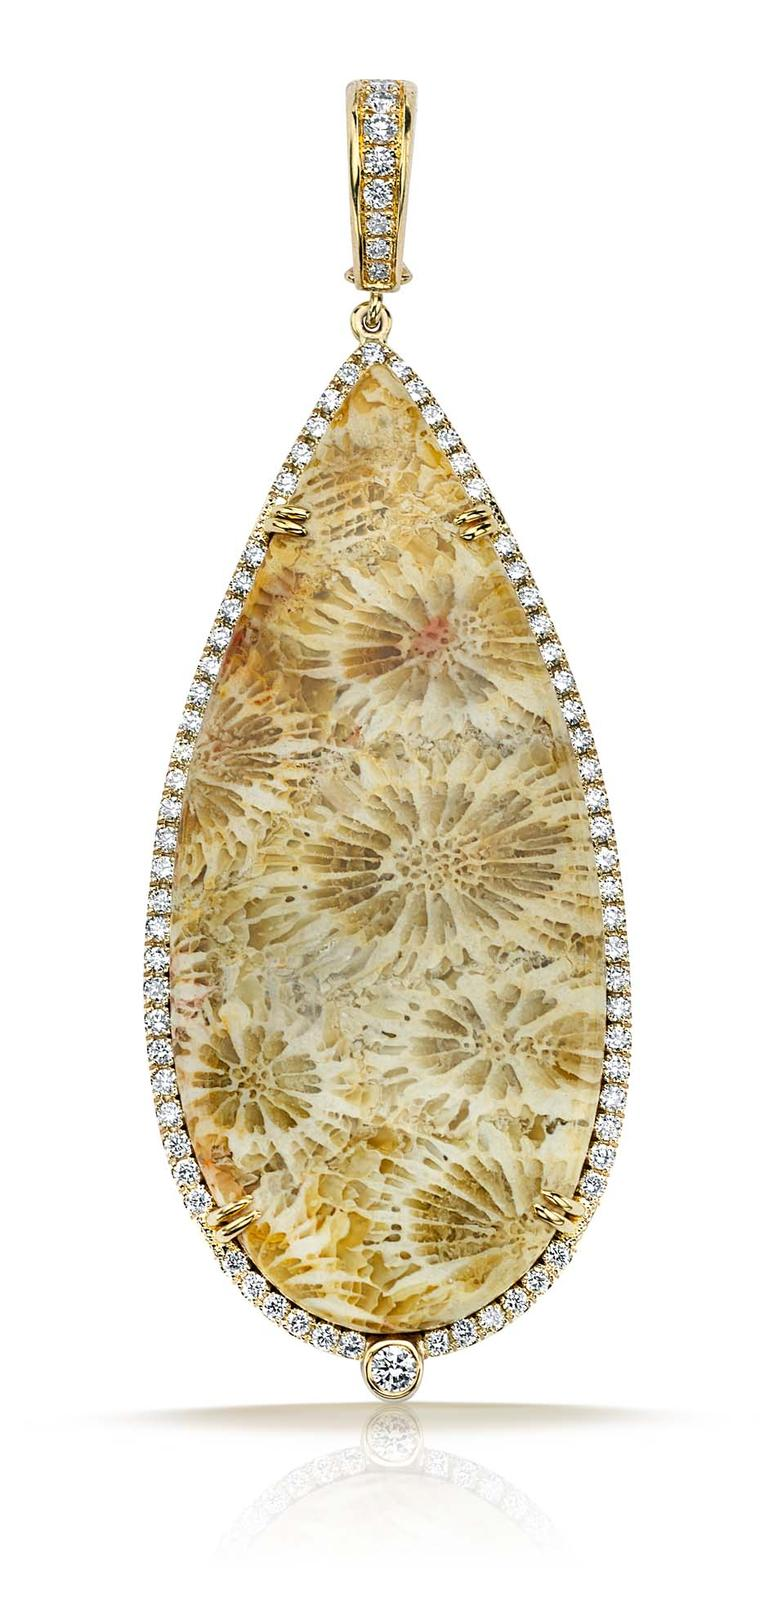 Pamela Huizenga gold pendant with 43.51ct of fossilzed coral outlined in a diamond pavé ($12,000).